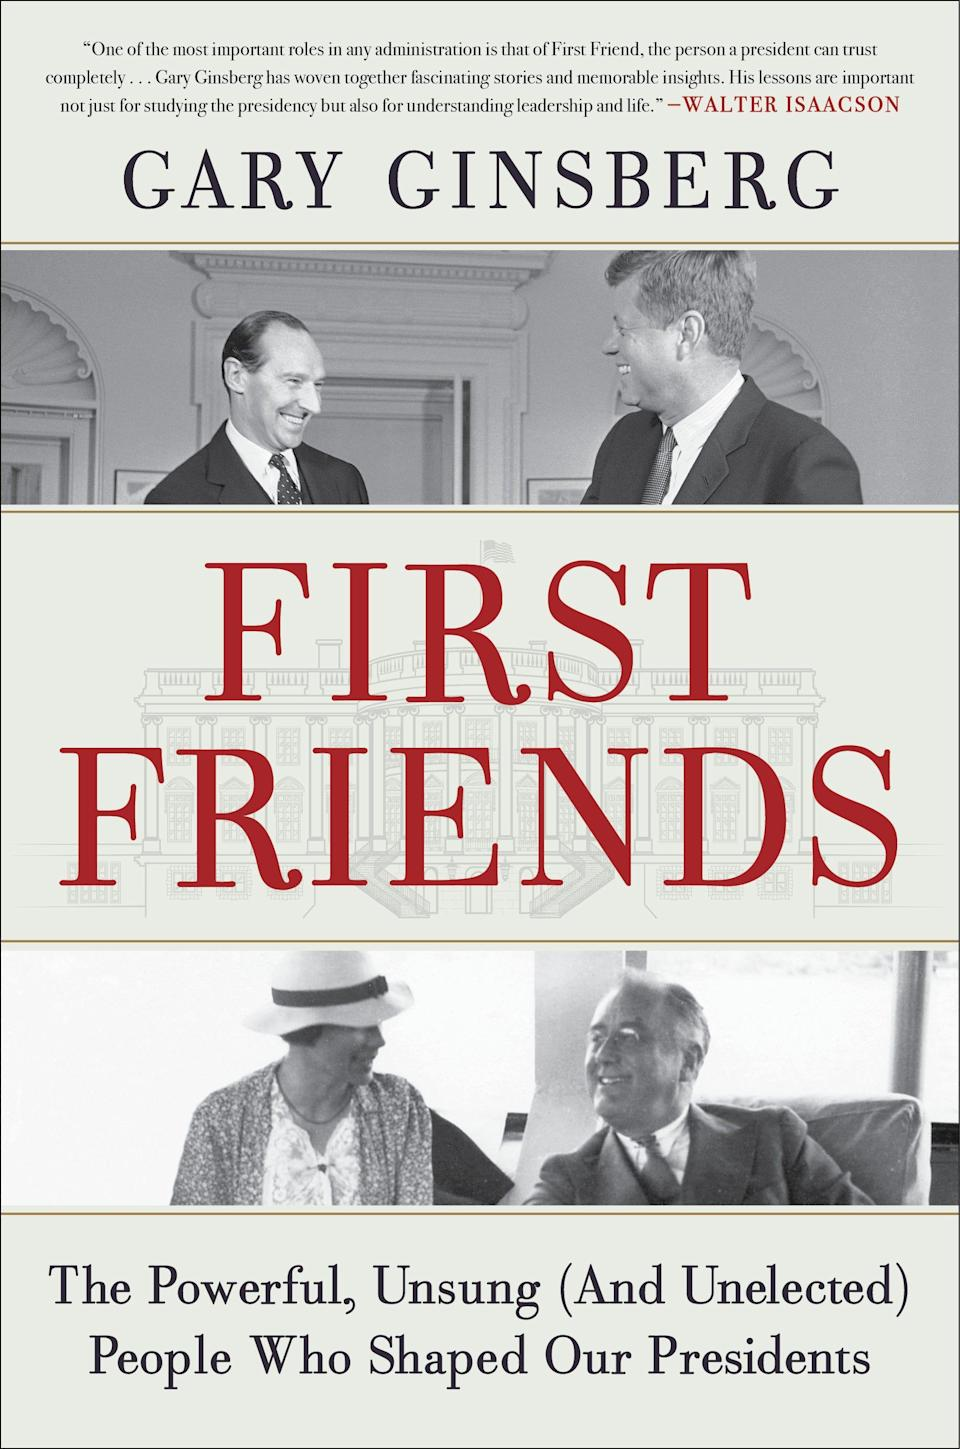 """""""First Friends: The Powerful, Unsung (And Unelected) People Who Shaped Our Presidents,"""" by Gary Ginsberg."""